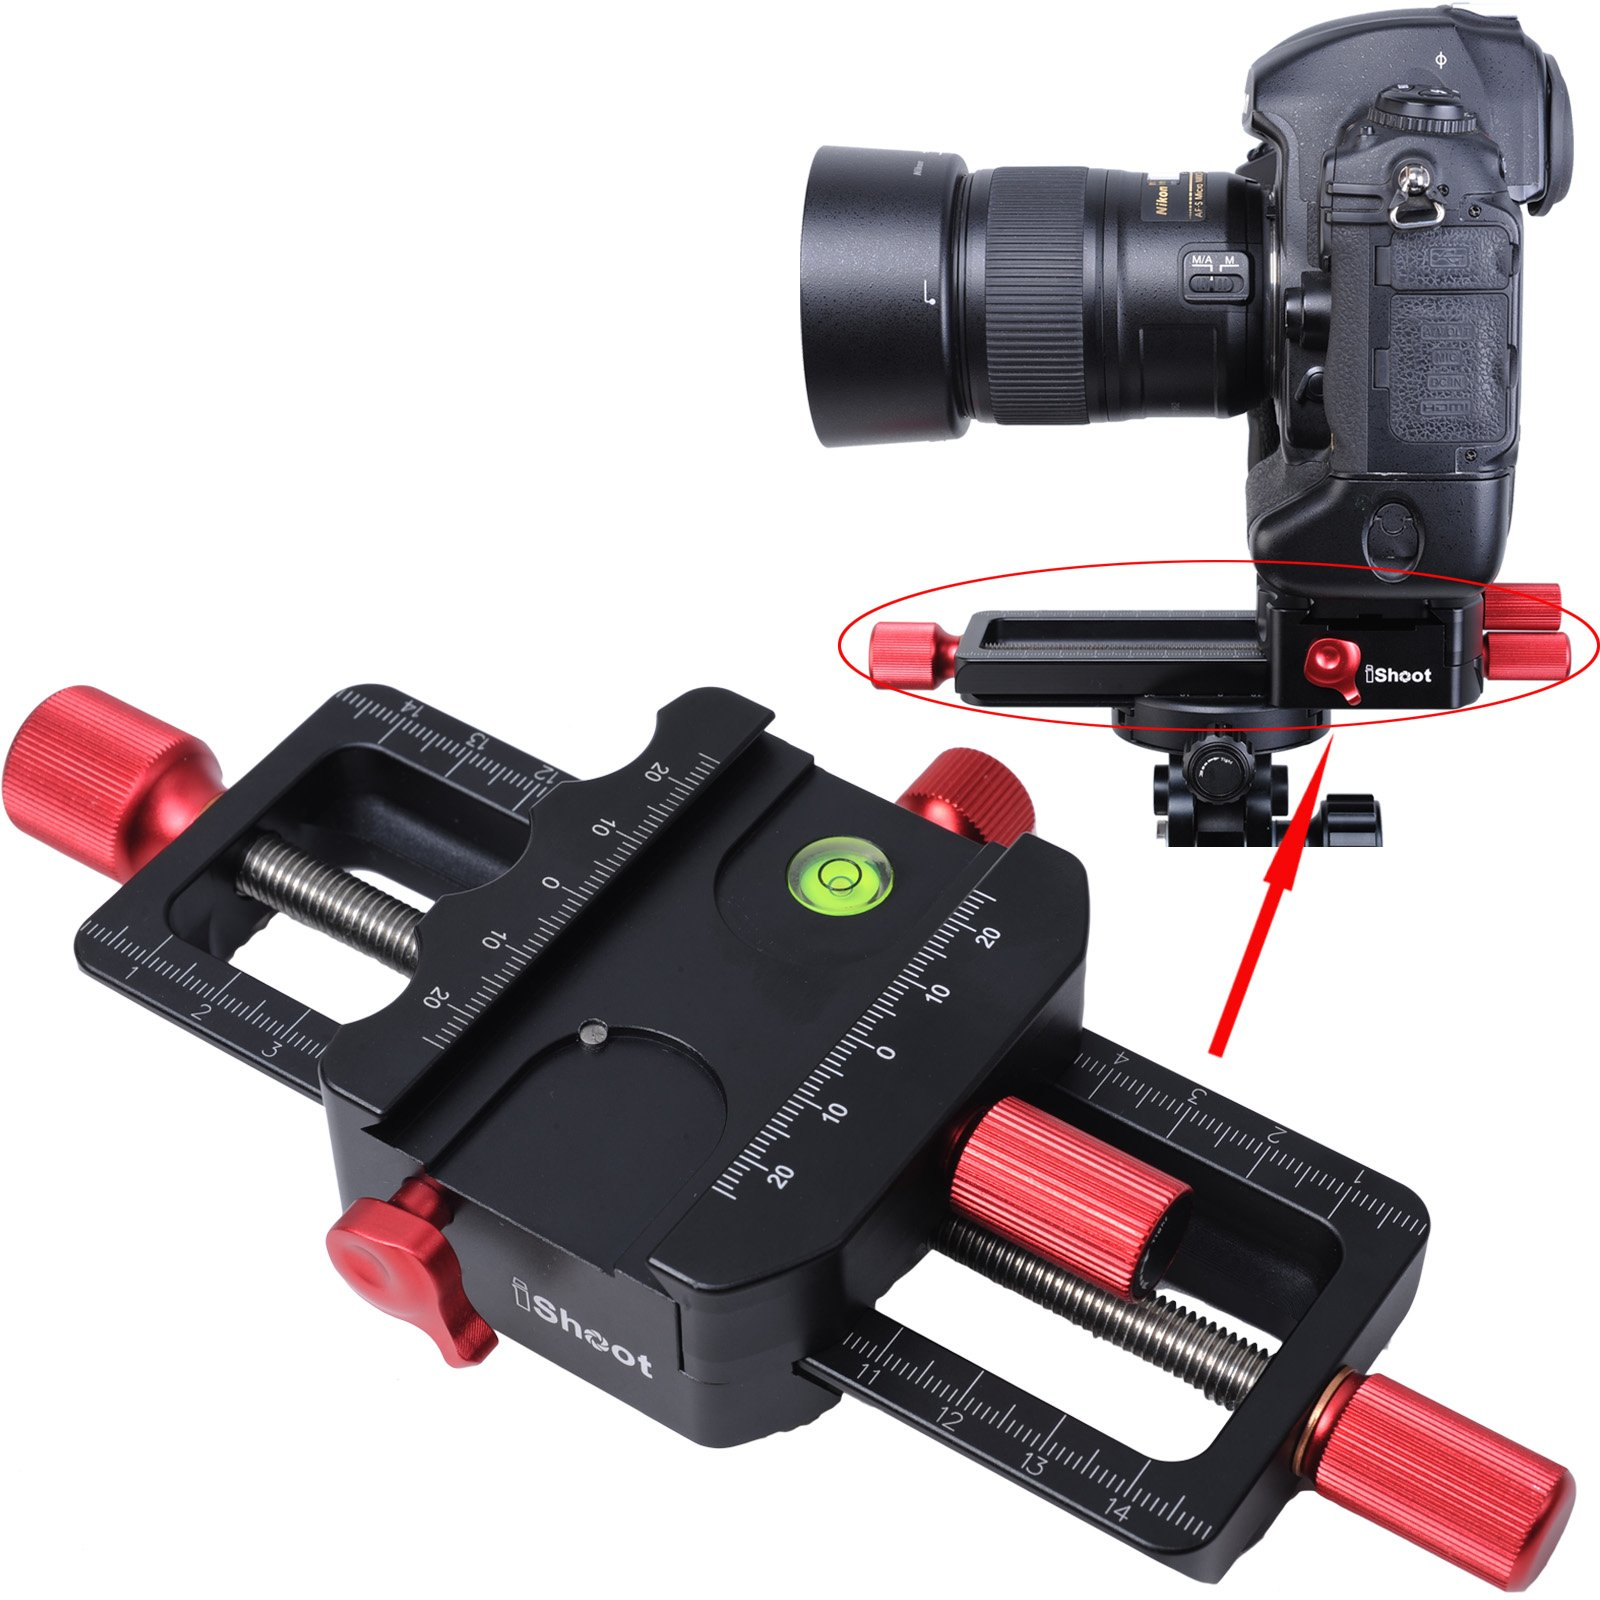 iShoot Universal All Metal 150mm Macro Focusing Rail Slider Close-up Shooting Head Camera Support Bracket Holder With Arca-Swiss Fit Clamp and Quick Release Plate in Bottom for Tripod Ballhead by photoloving